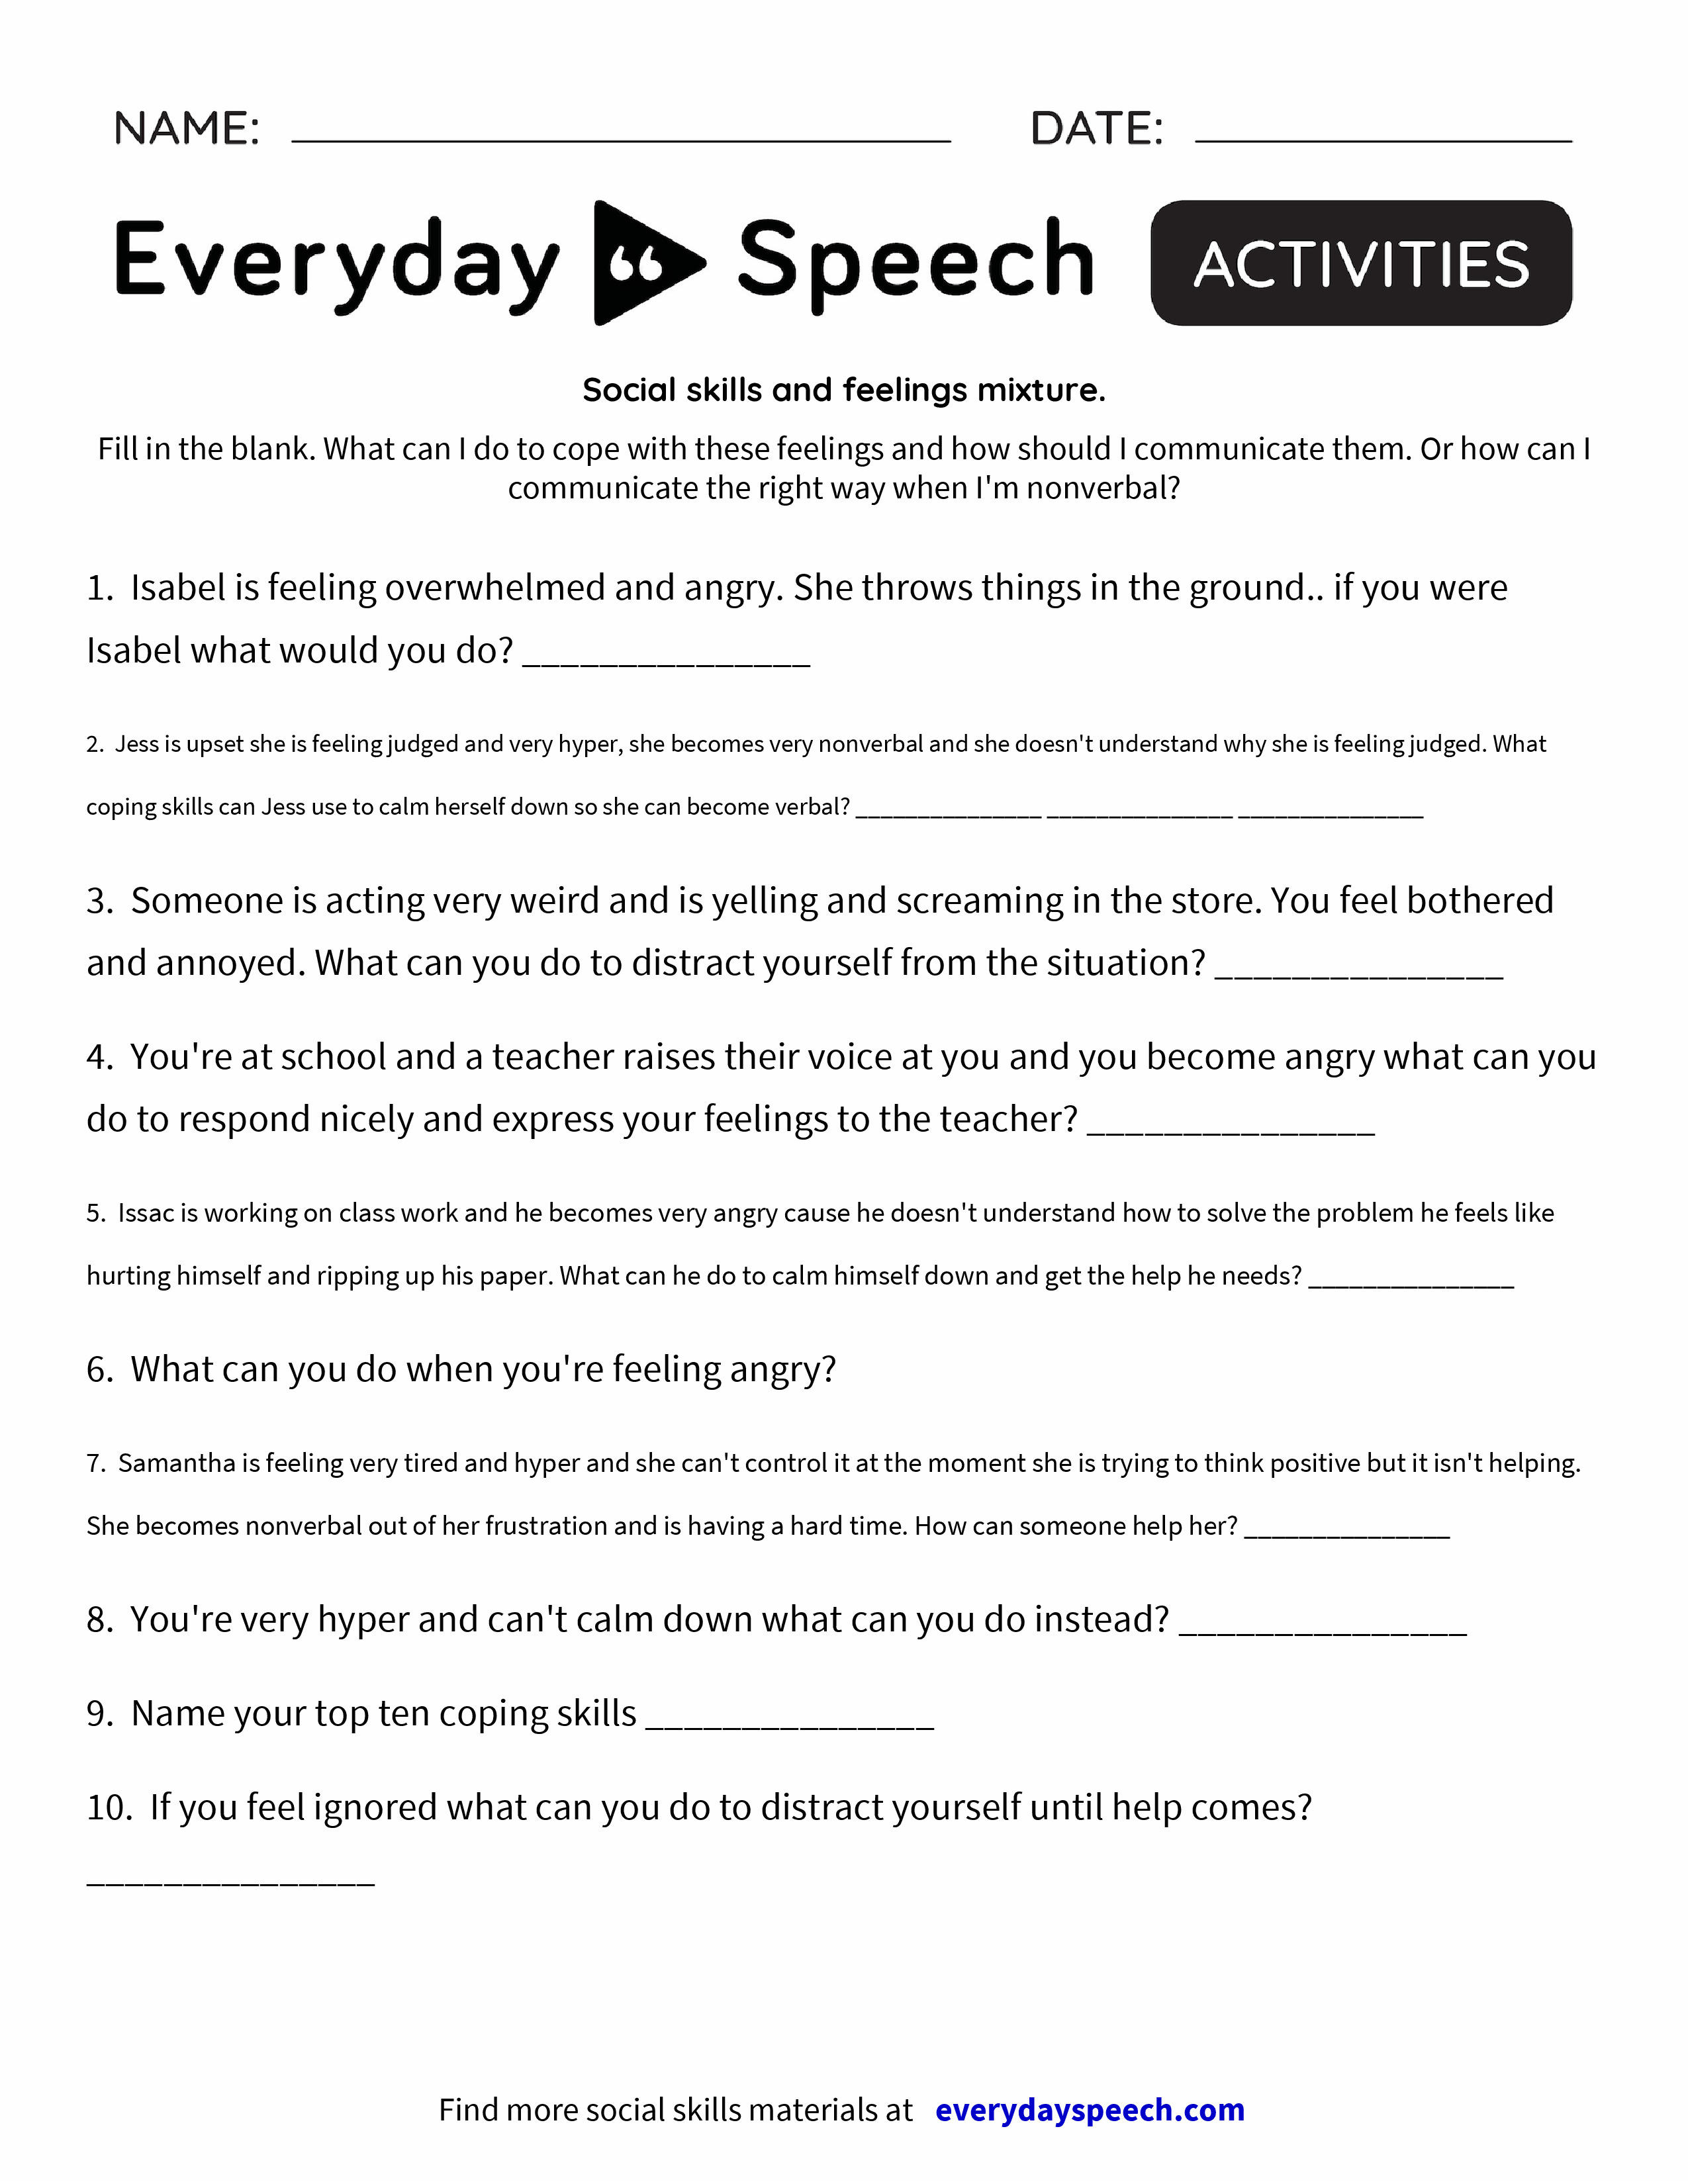 Uncategorized Your You Re Worksheet social skills and feelings mixture everyday speech mixture